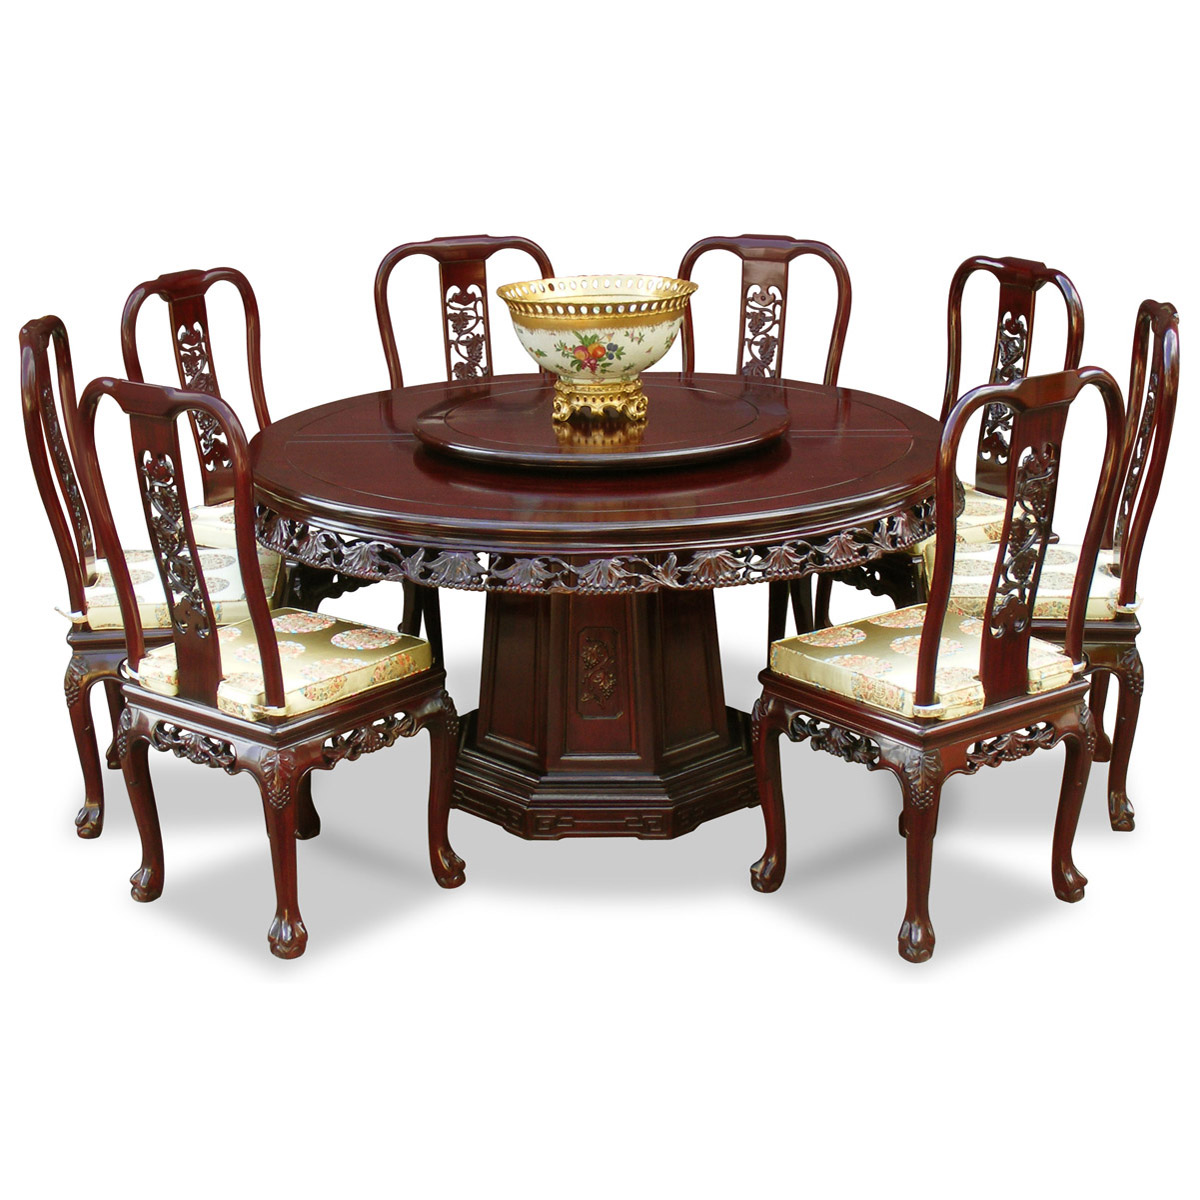 Image of: Stylish Queen Anne Dining Chairs